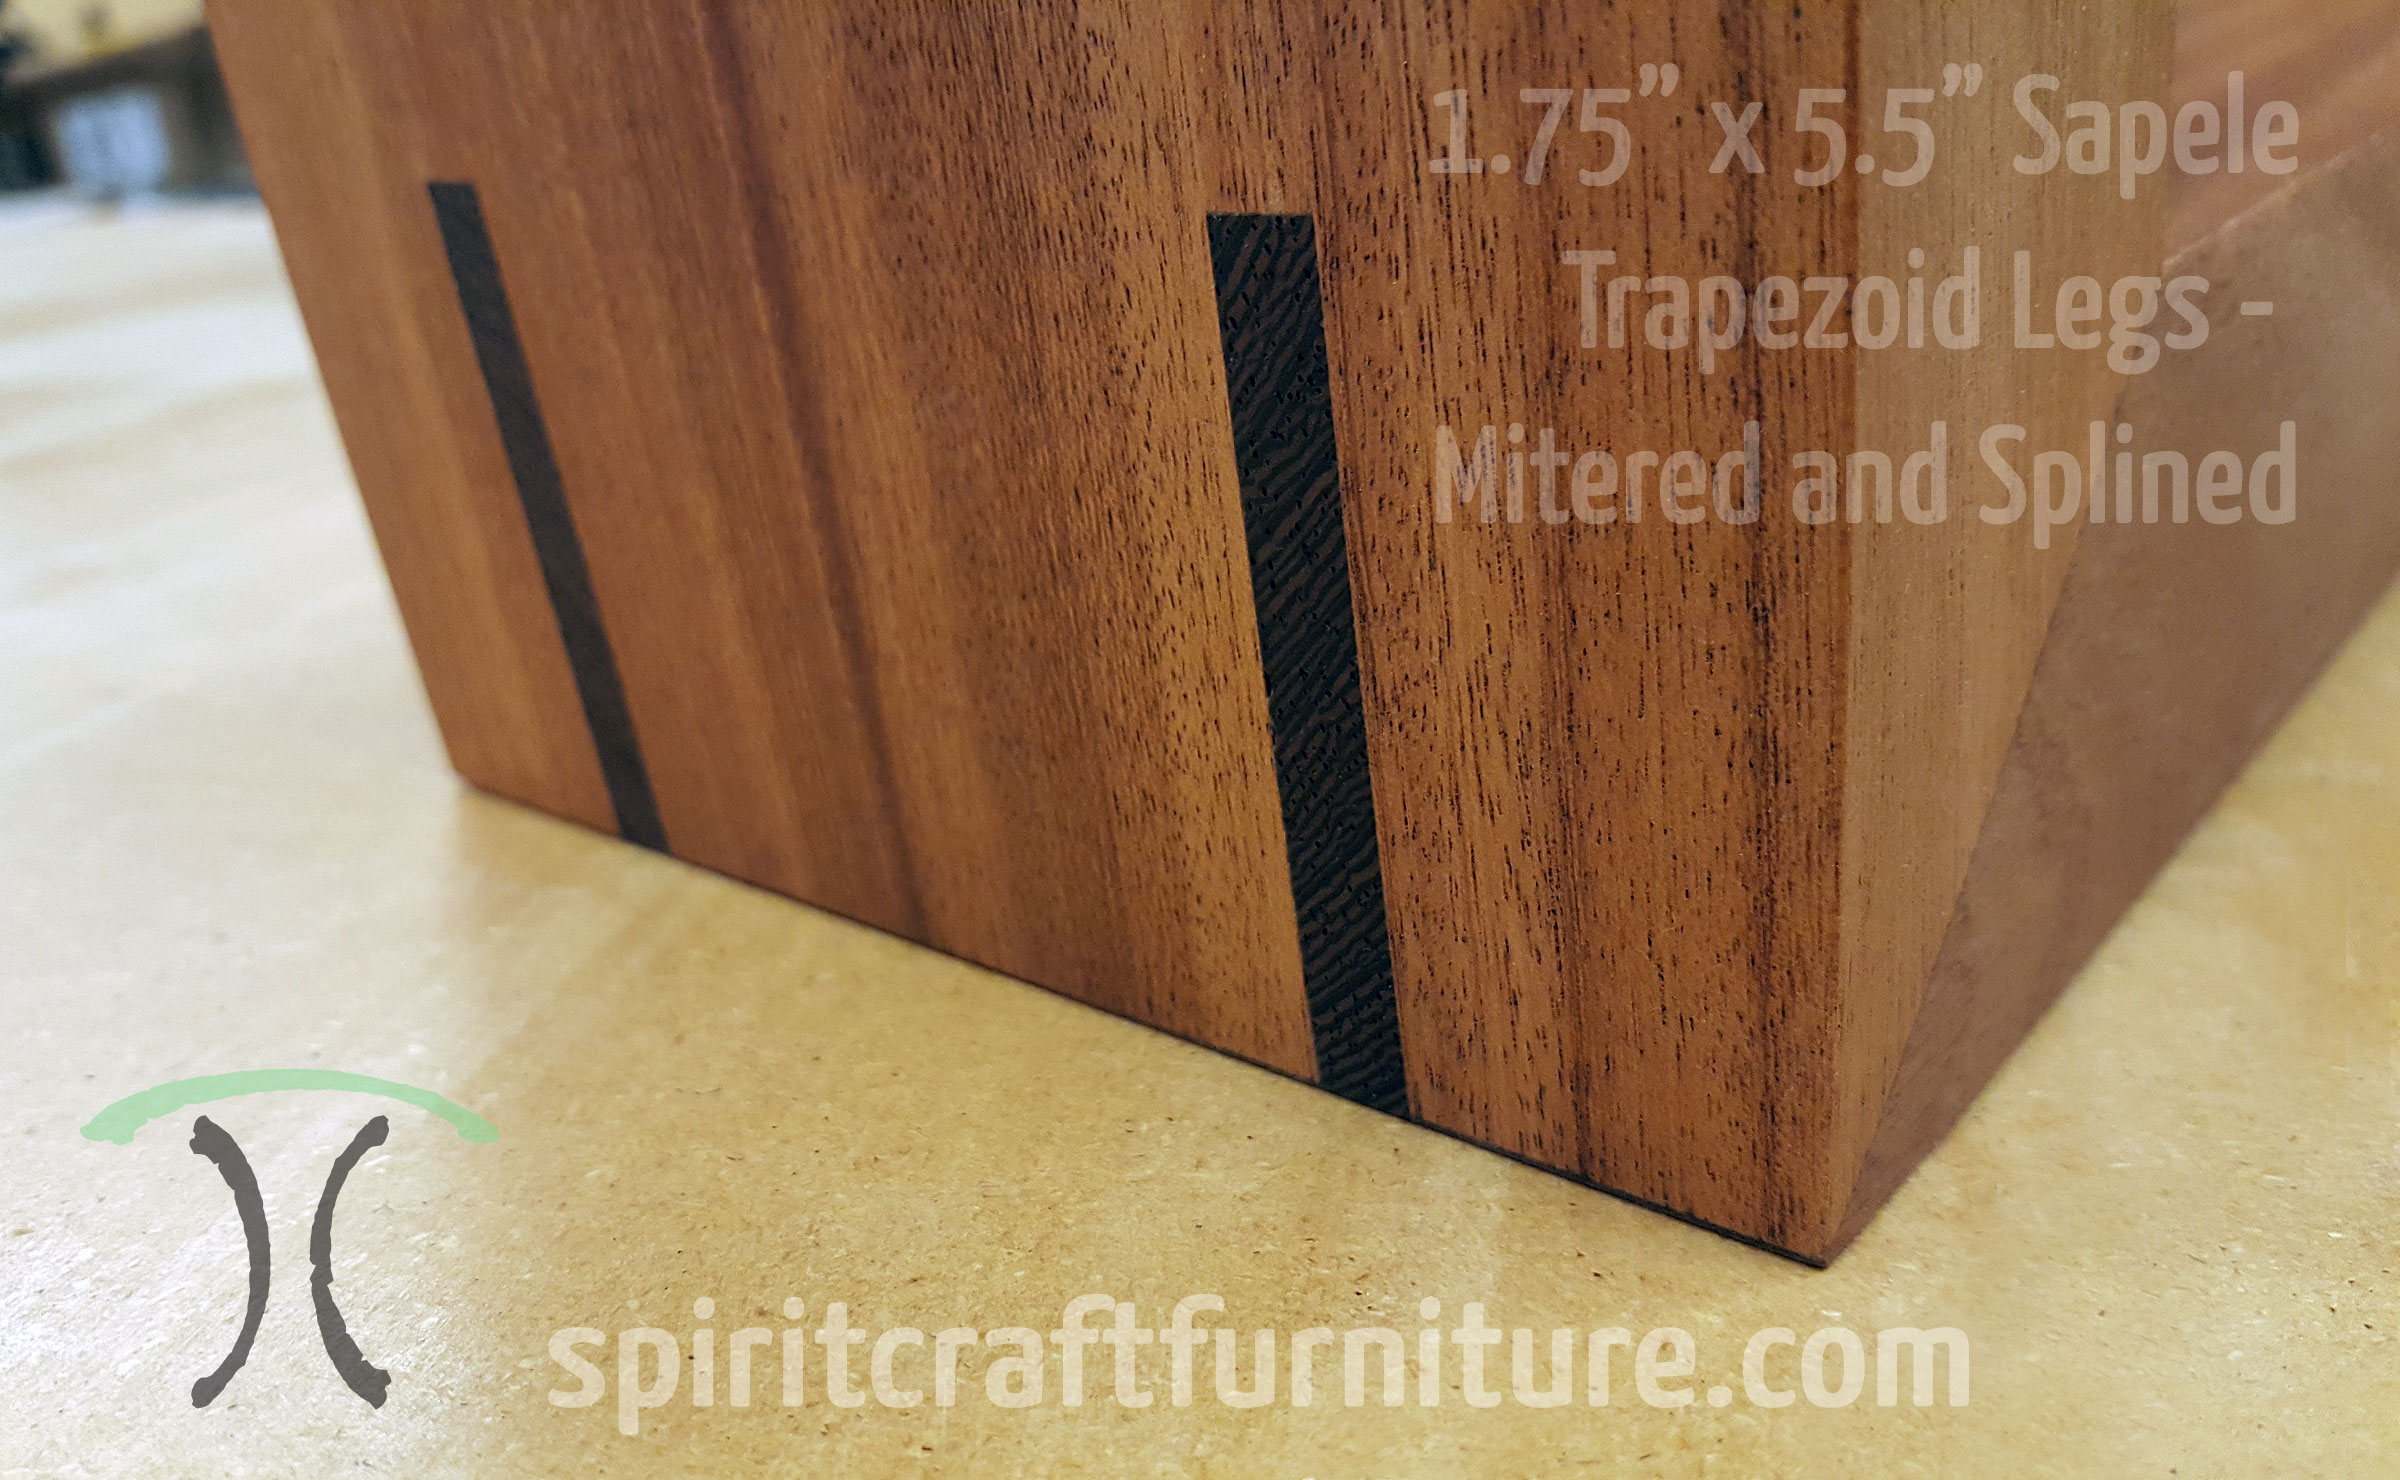 Detail of Sapele mitered and splined trapezoid legs with Wenge Splines